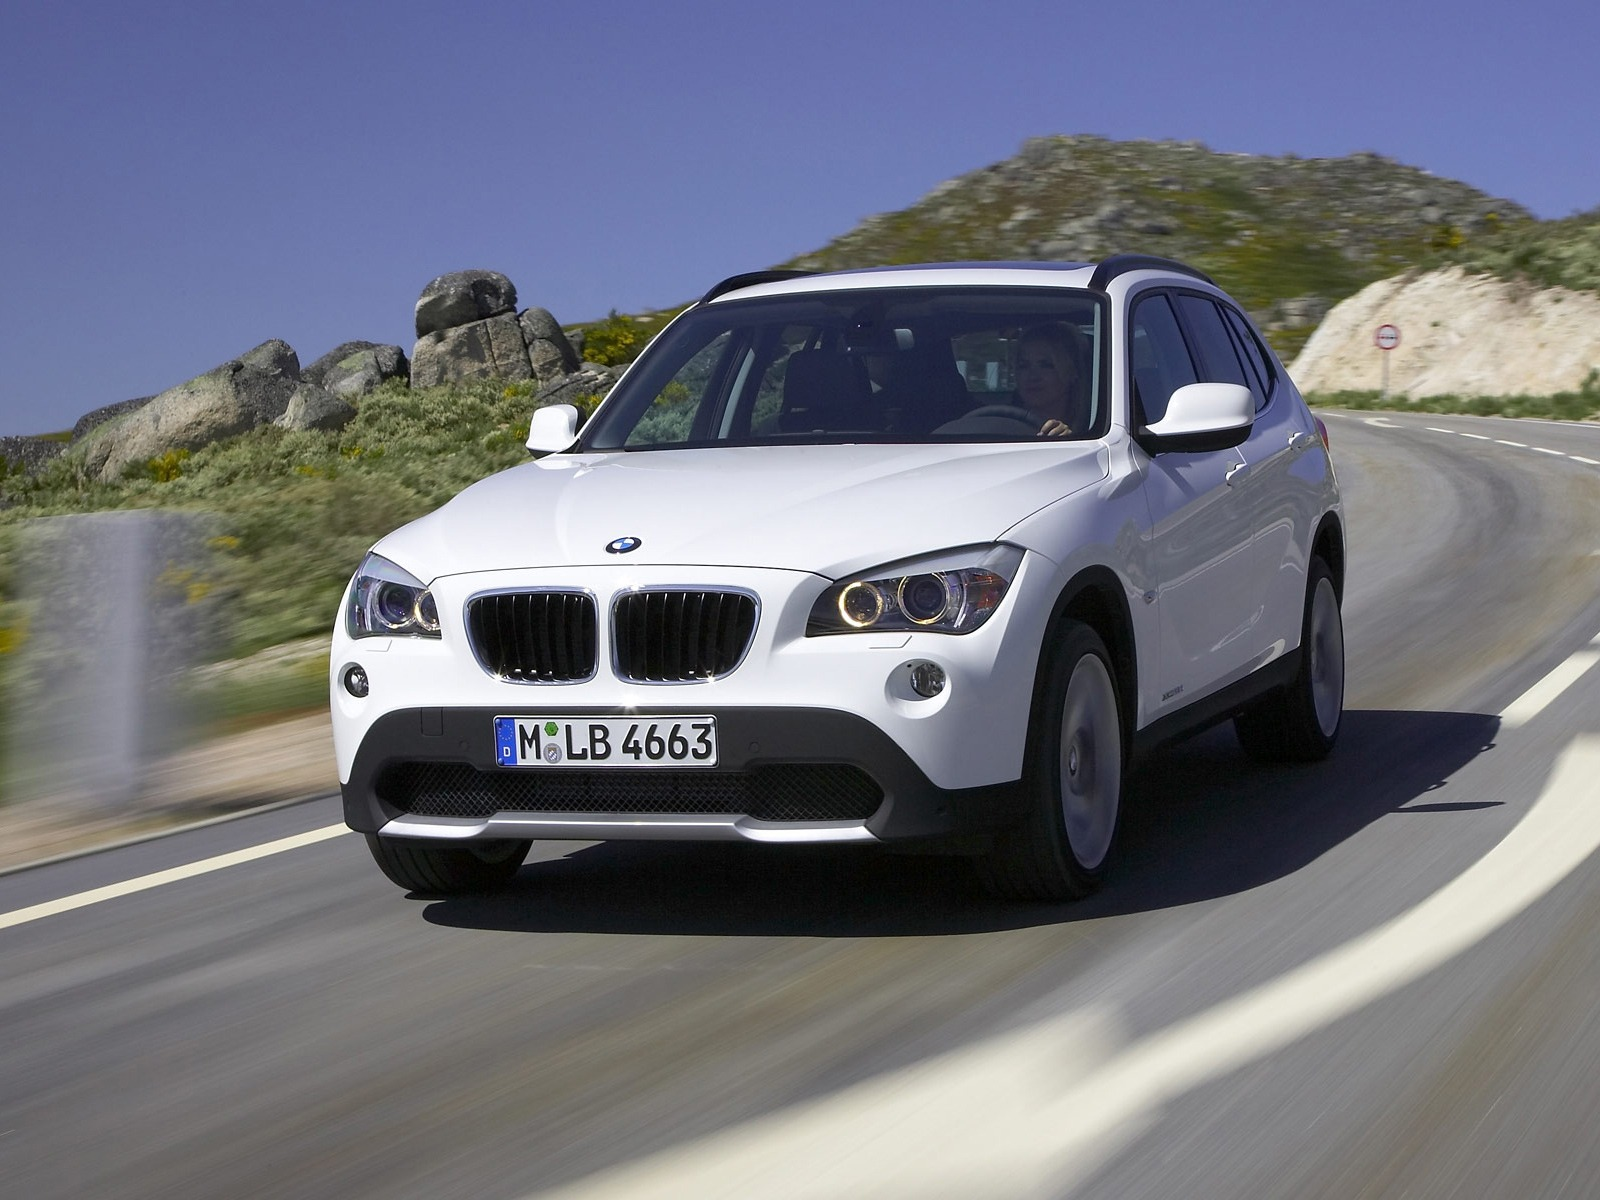 Wallpaper download of cars - Bmw X1 Wallpaper Bmw Cars Wallpapers